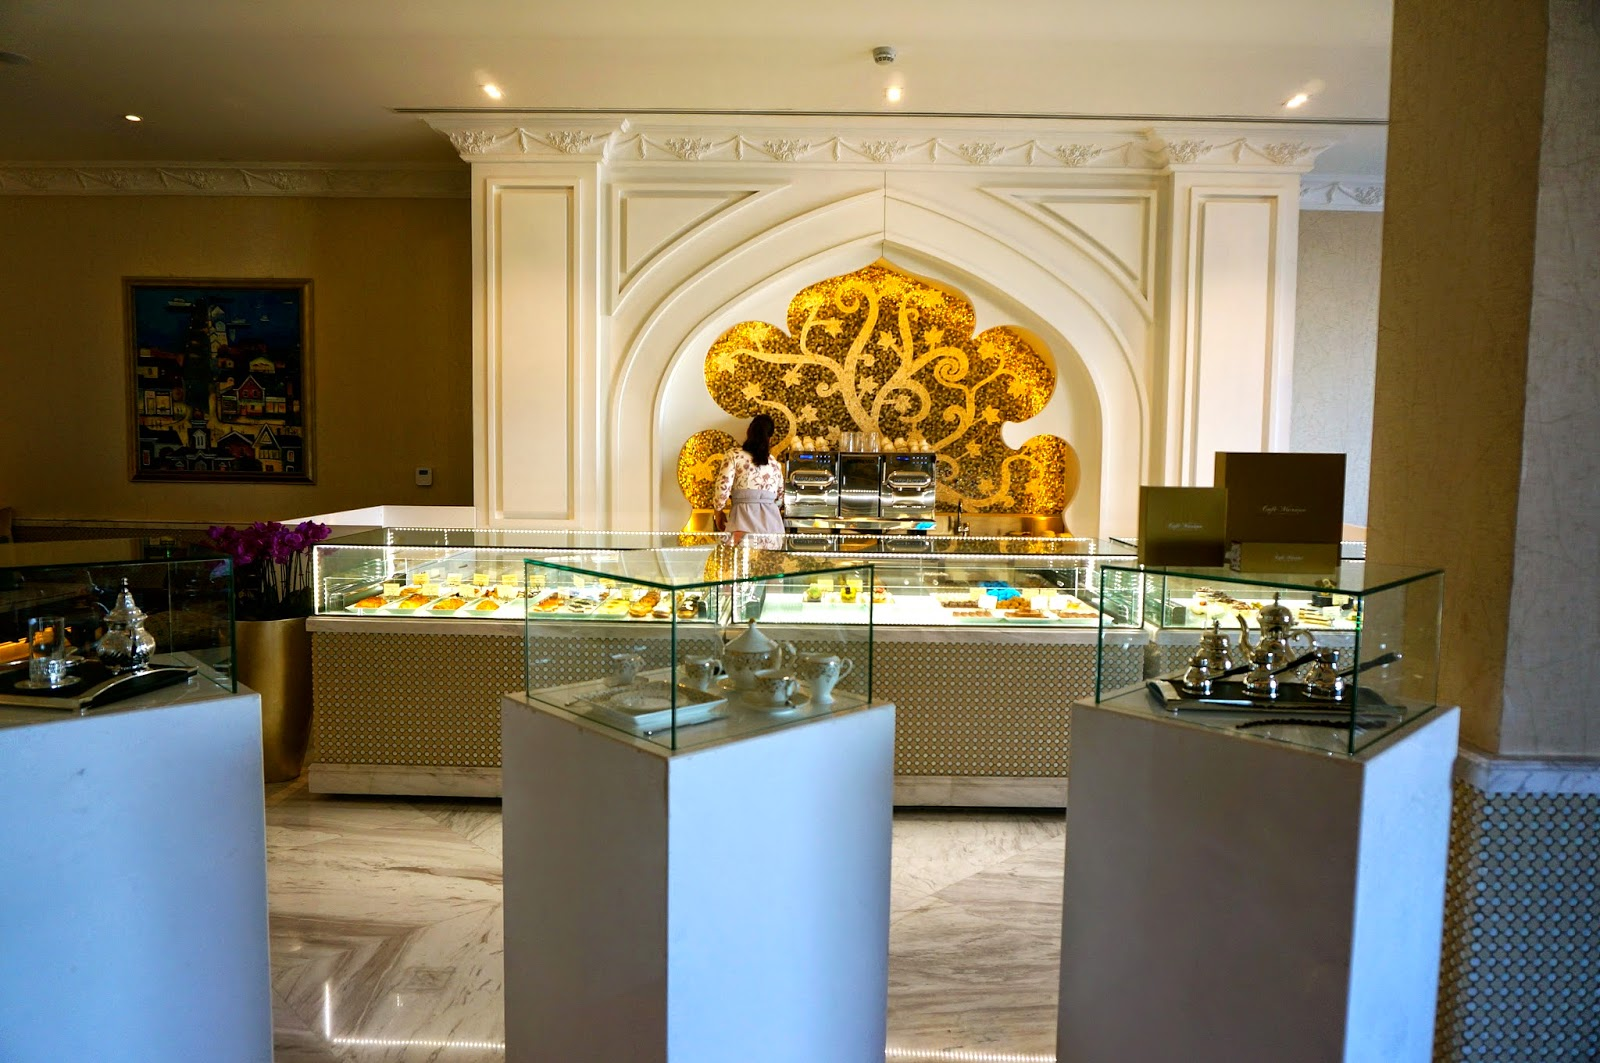 Pre-Opening Review: The Marsa Malaz, Doha